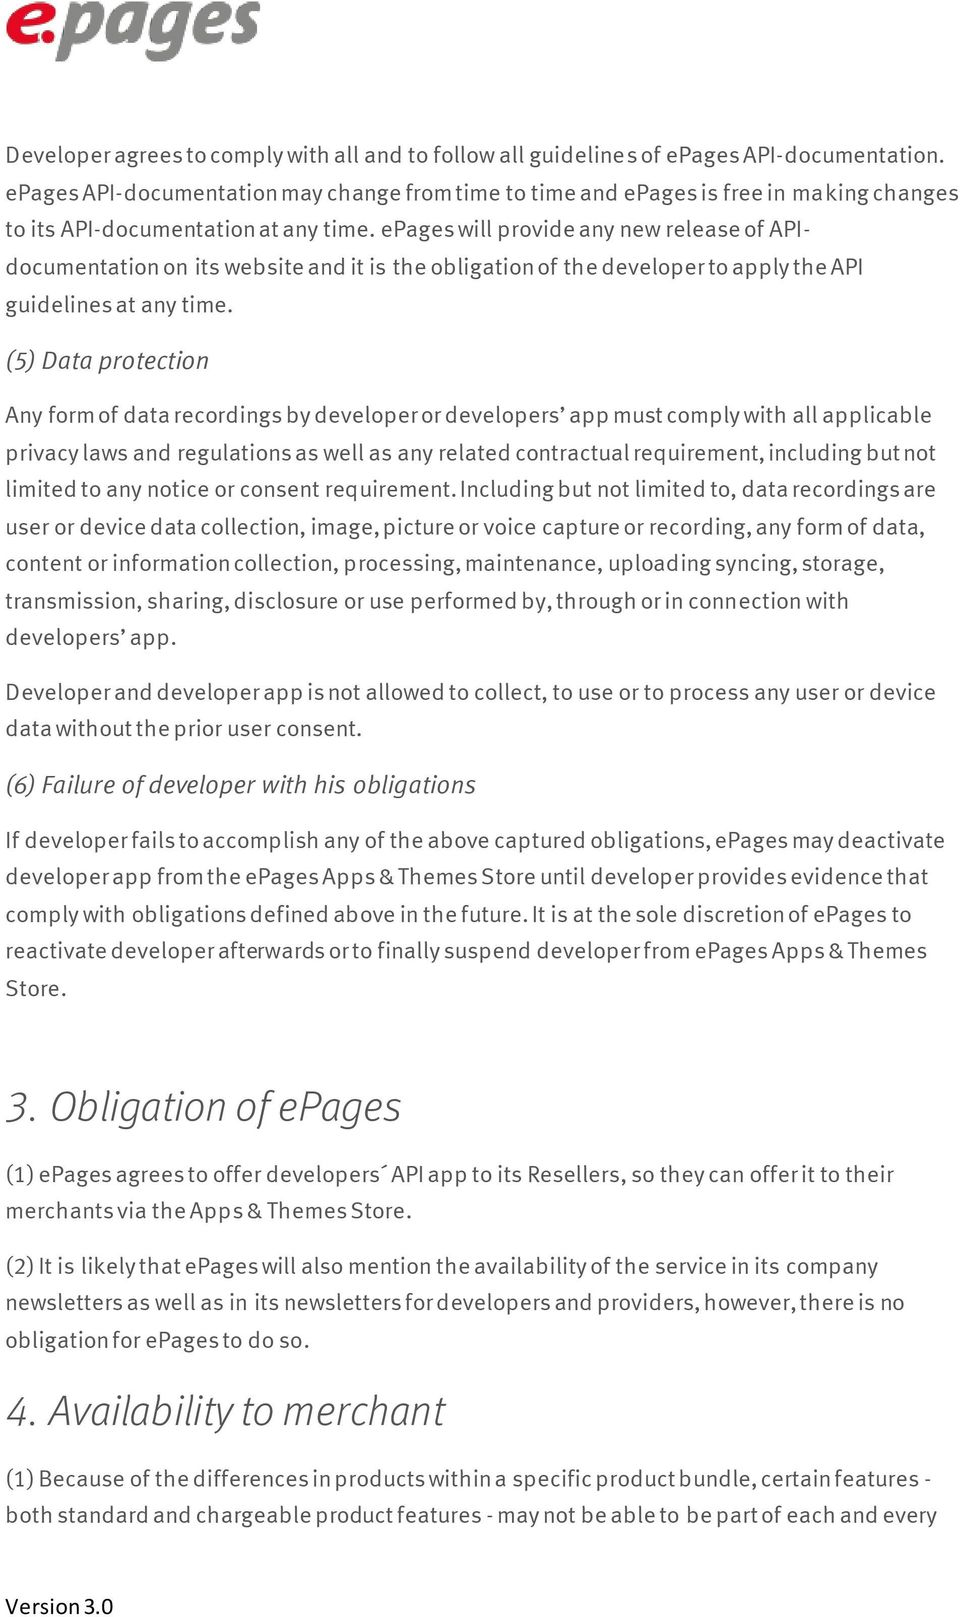 epages will provide any new release of APIdocumentation on its website and it is the obligation of the developer to apply the API guidelines at any time.